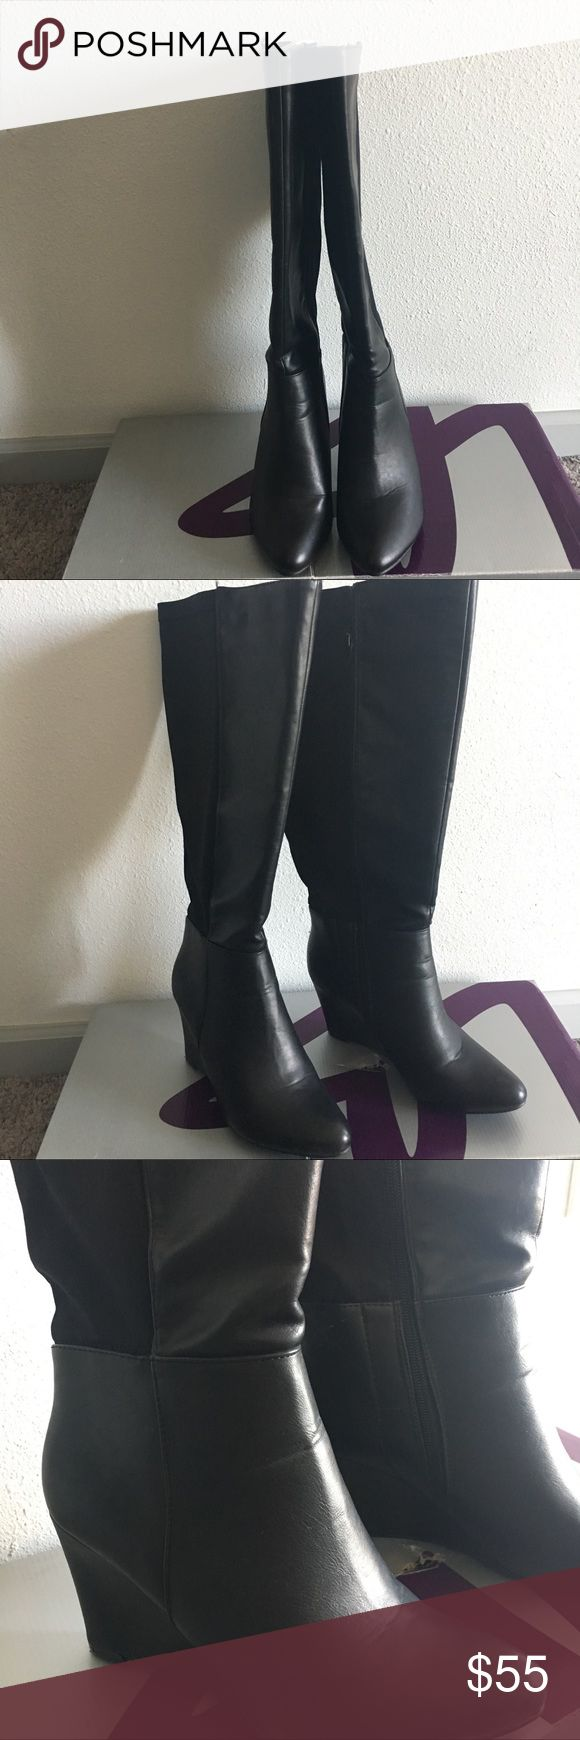 Lane Bryant tall black boots heels size 9 Brand new. Small scuff as shown in pictures caused by moving. Size 9. Large calf Lane Bryant Shoes Heeled Boots